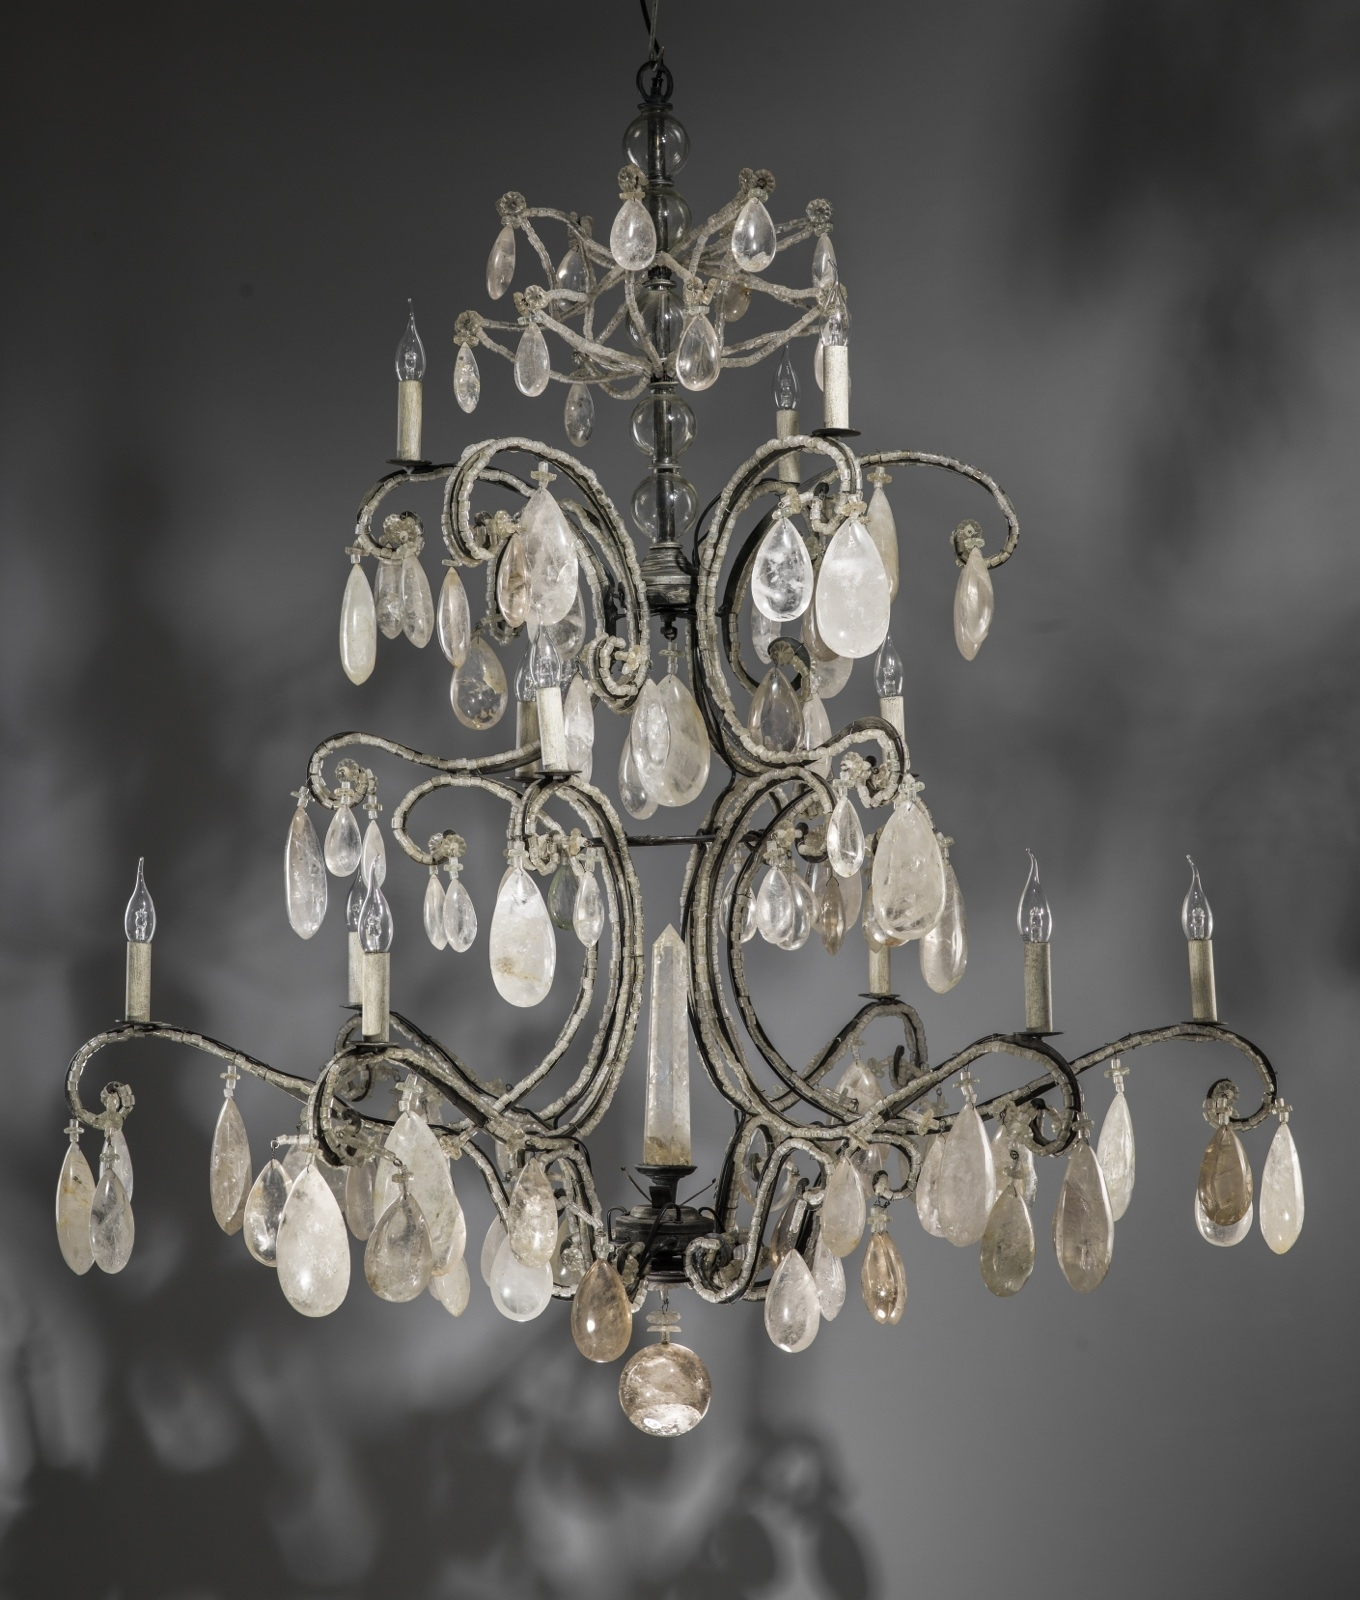 2019 Massive Wrought Iron Rock Crystal Chandelier With 12 Lights (t3435 For Massive Chandelier (View 12 of 20)